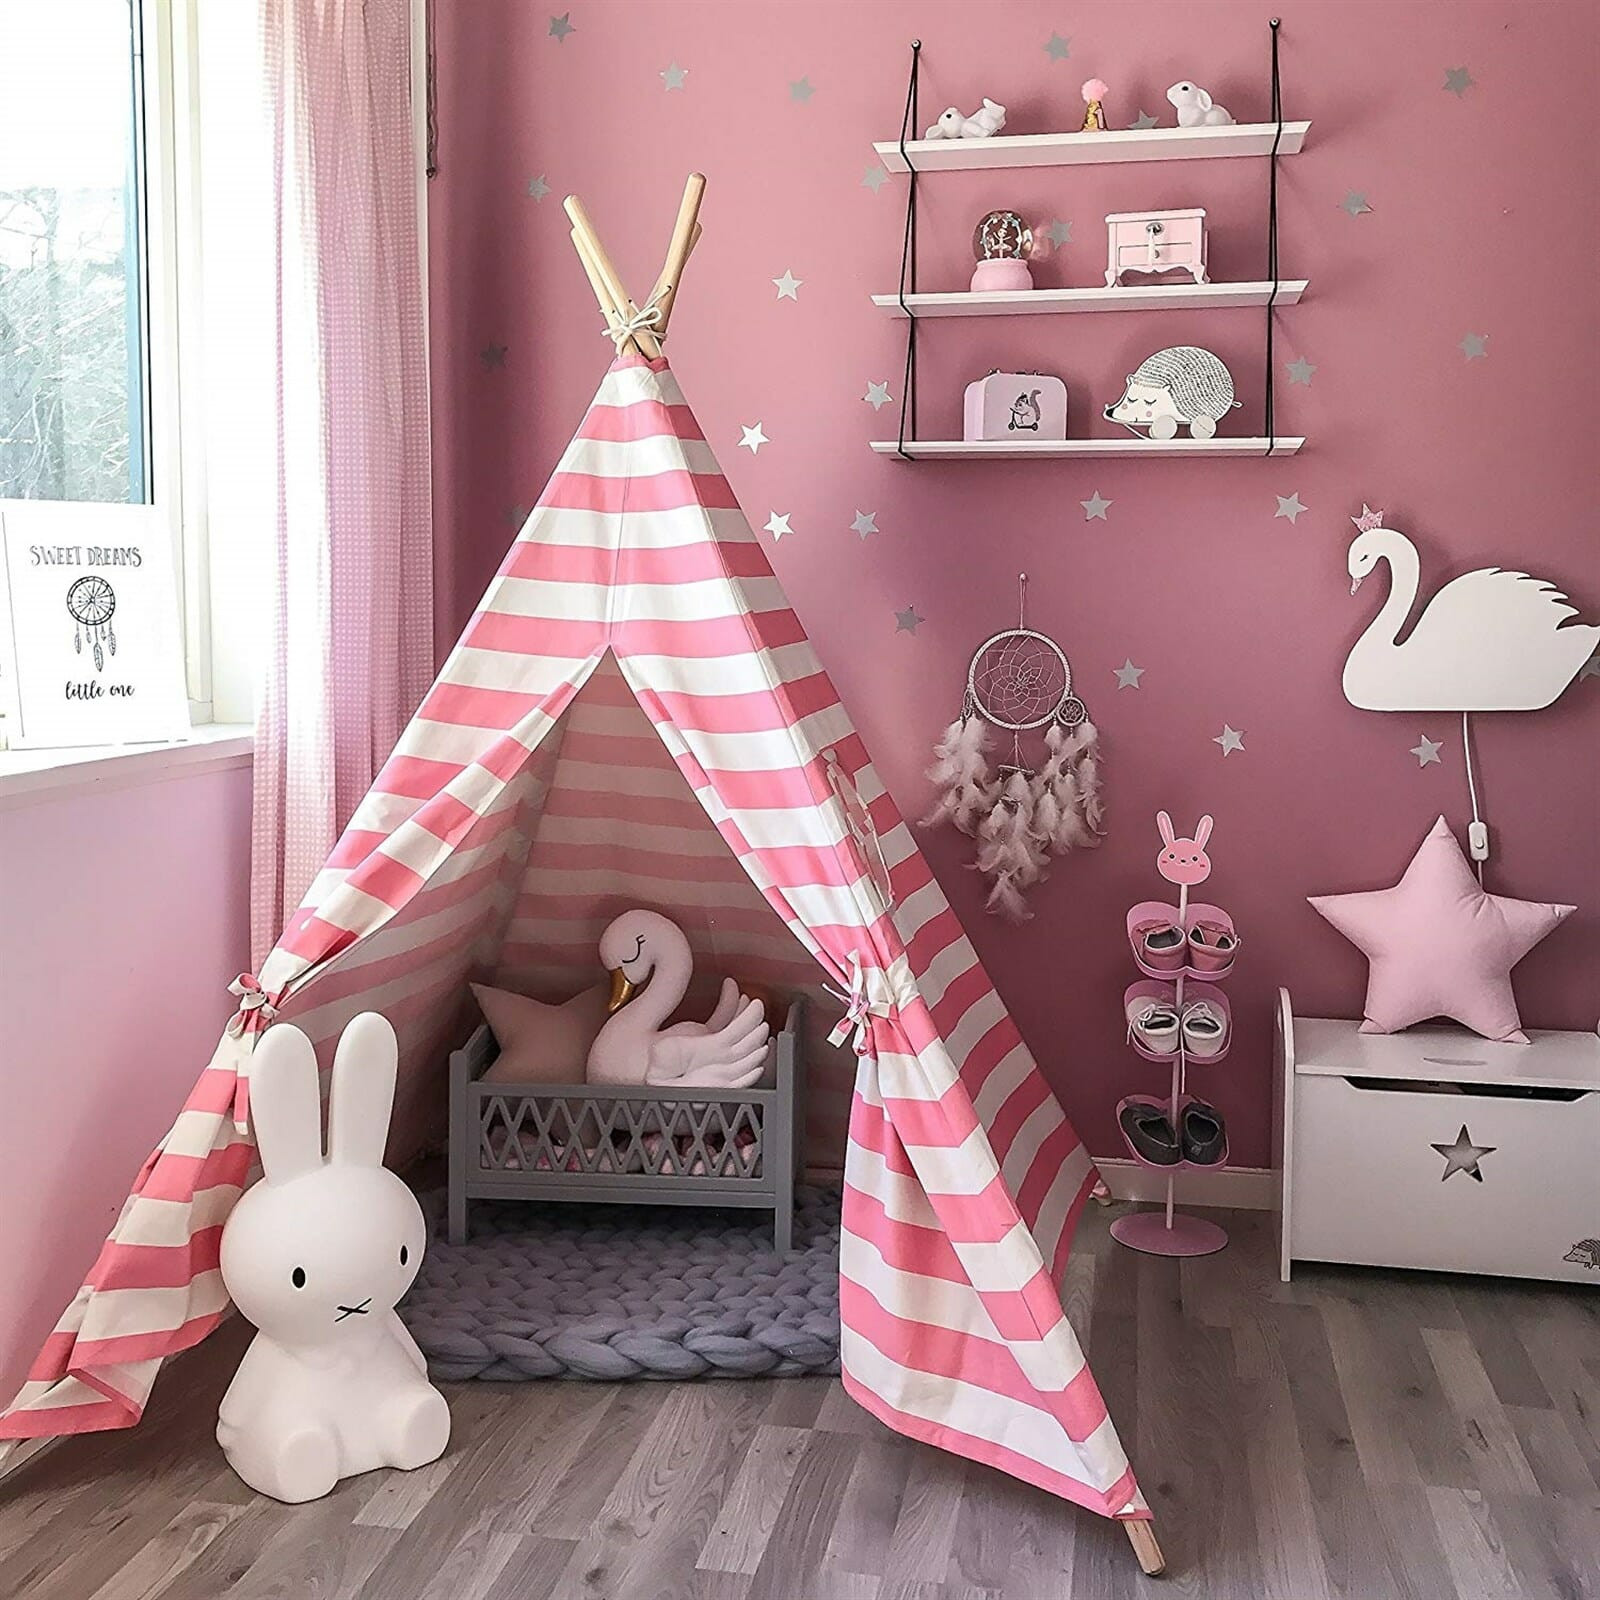 Kids Indoor Teepee  Kids Indoor Teepee ONLY $41 98 SHIPPED Reg $75 00